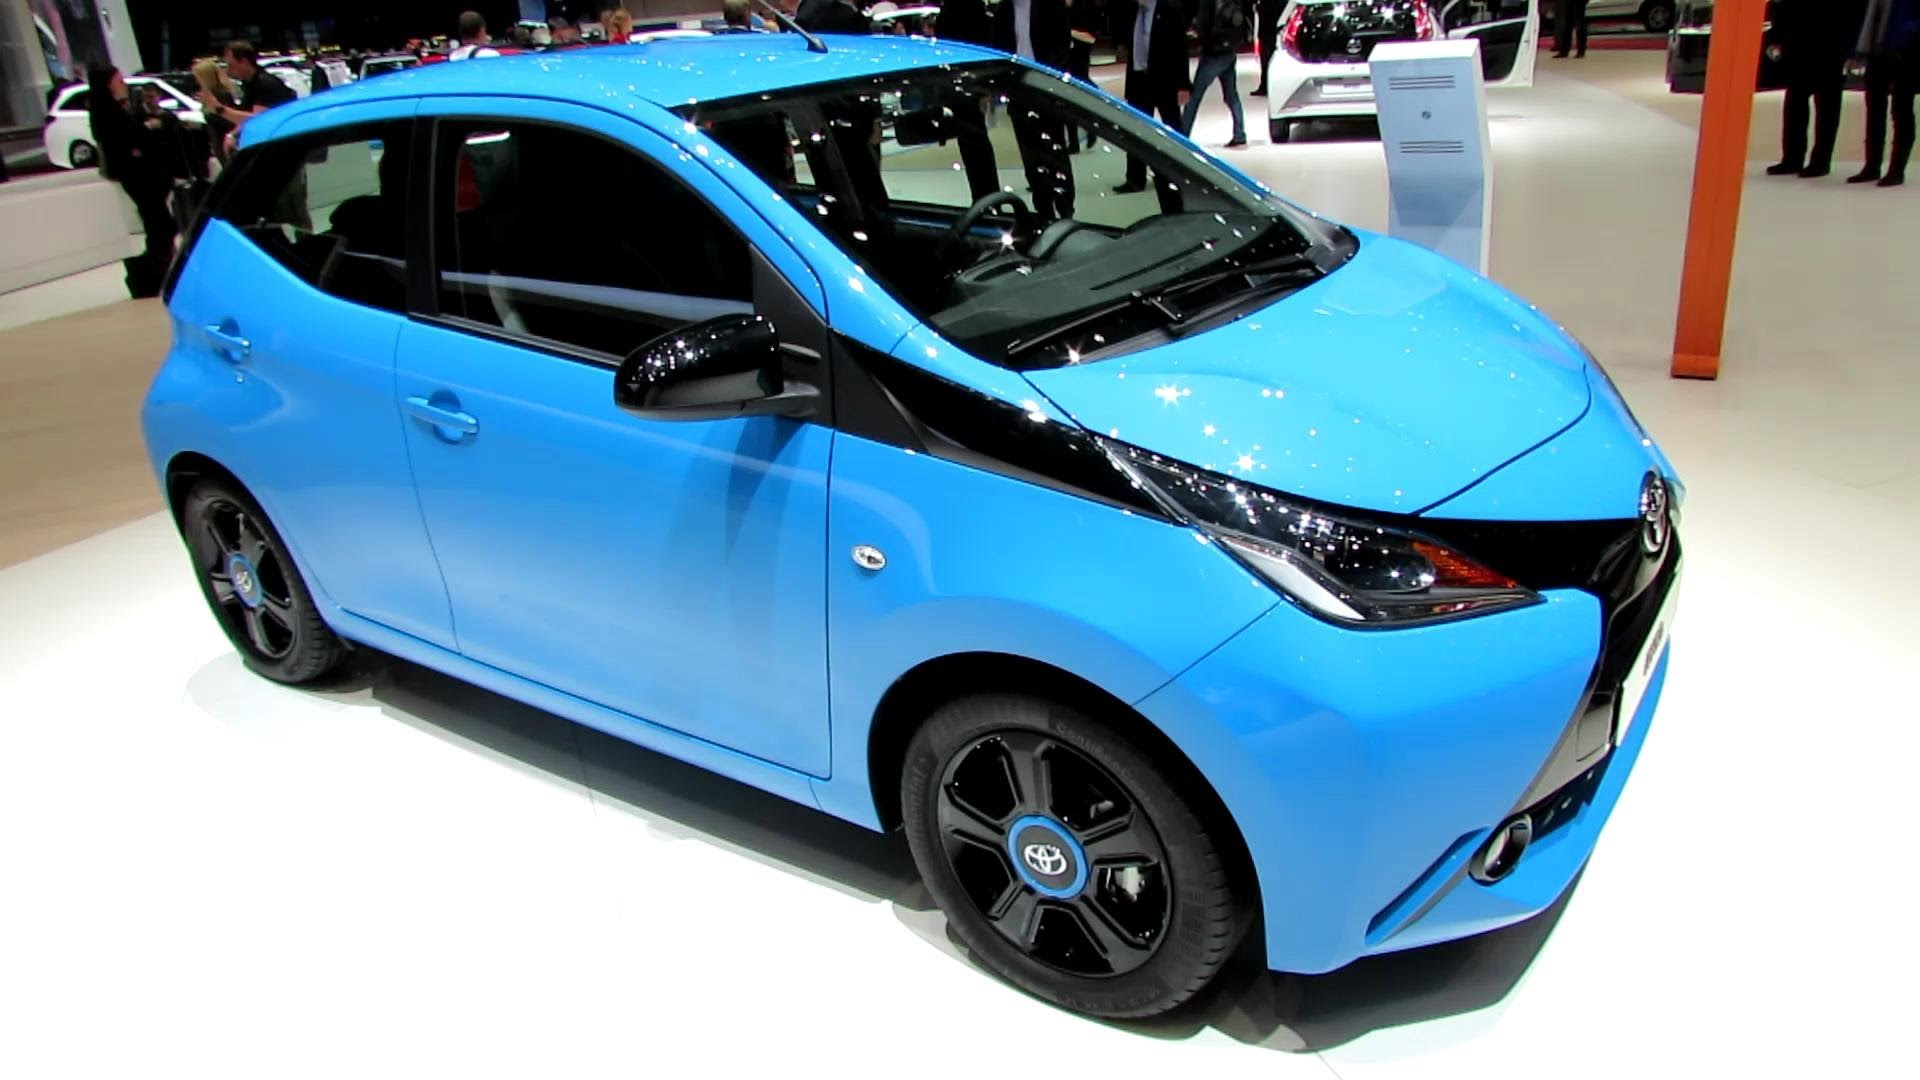 2015 Toyota Aygo - Exterior and Interior Walkaround - Debut at 2014 Geneva Motor Show